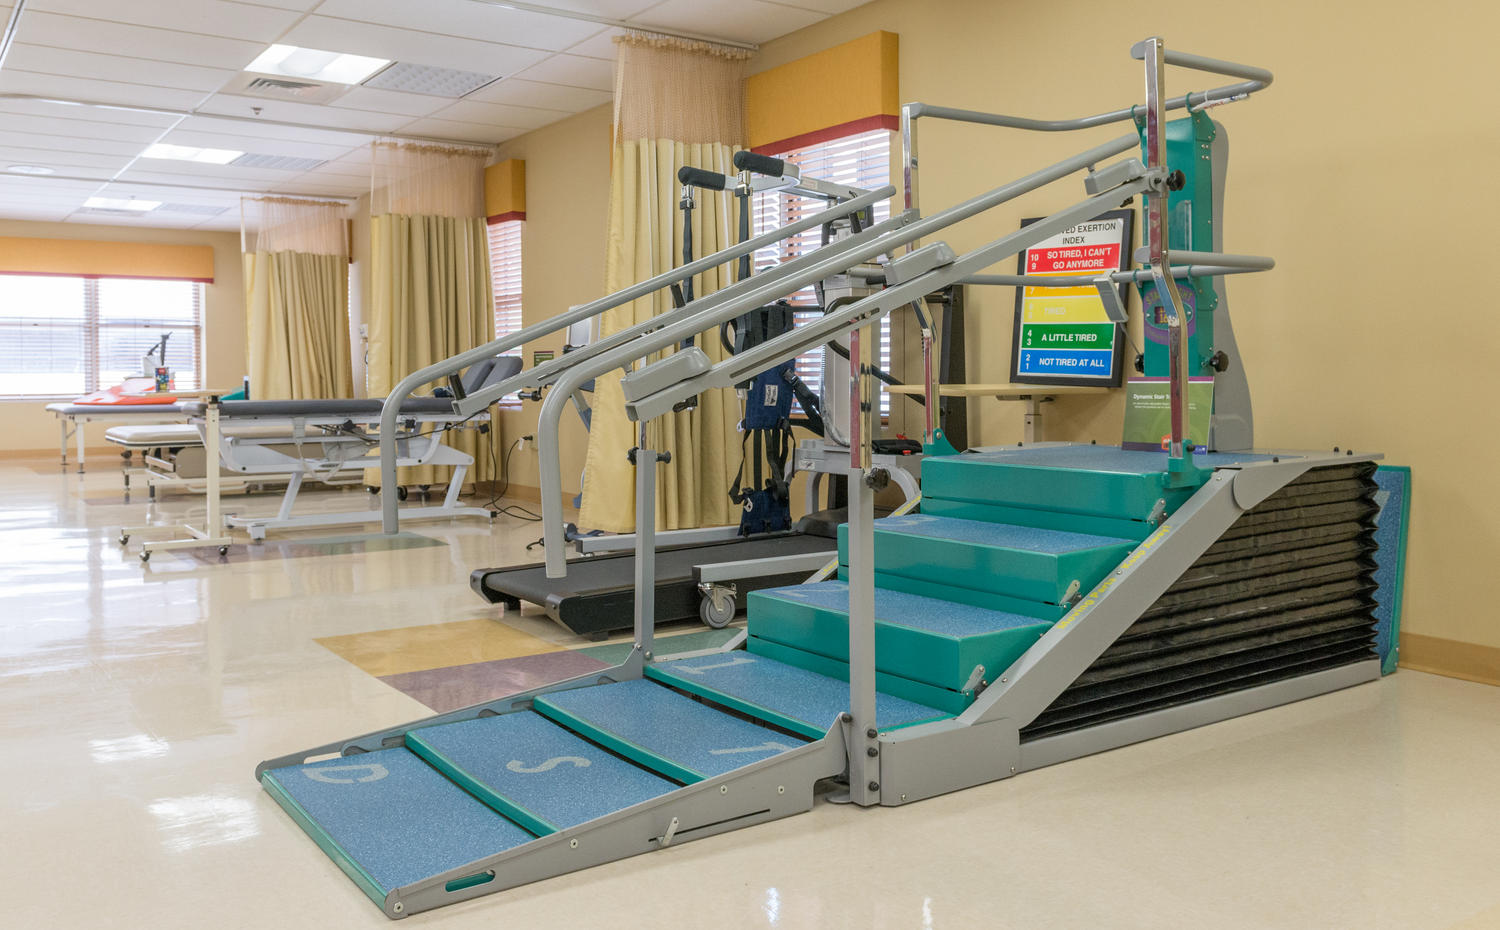 Manorcare Health Services Oak Large 009 Dynamic Stair Trainer 1500X930 72Dpi